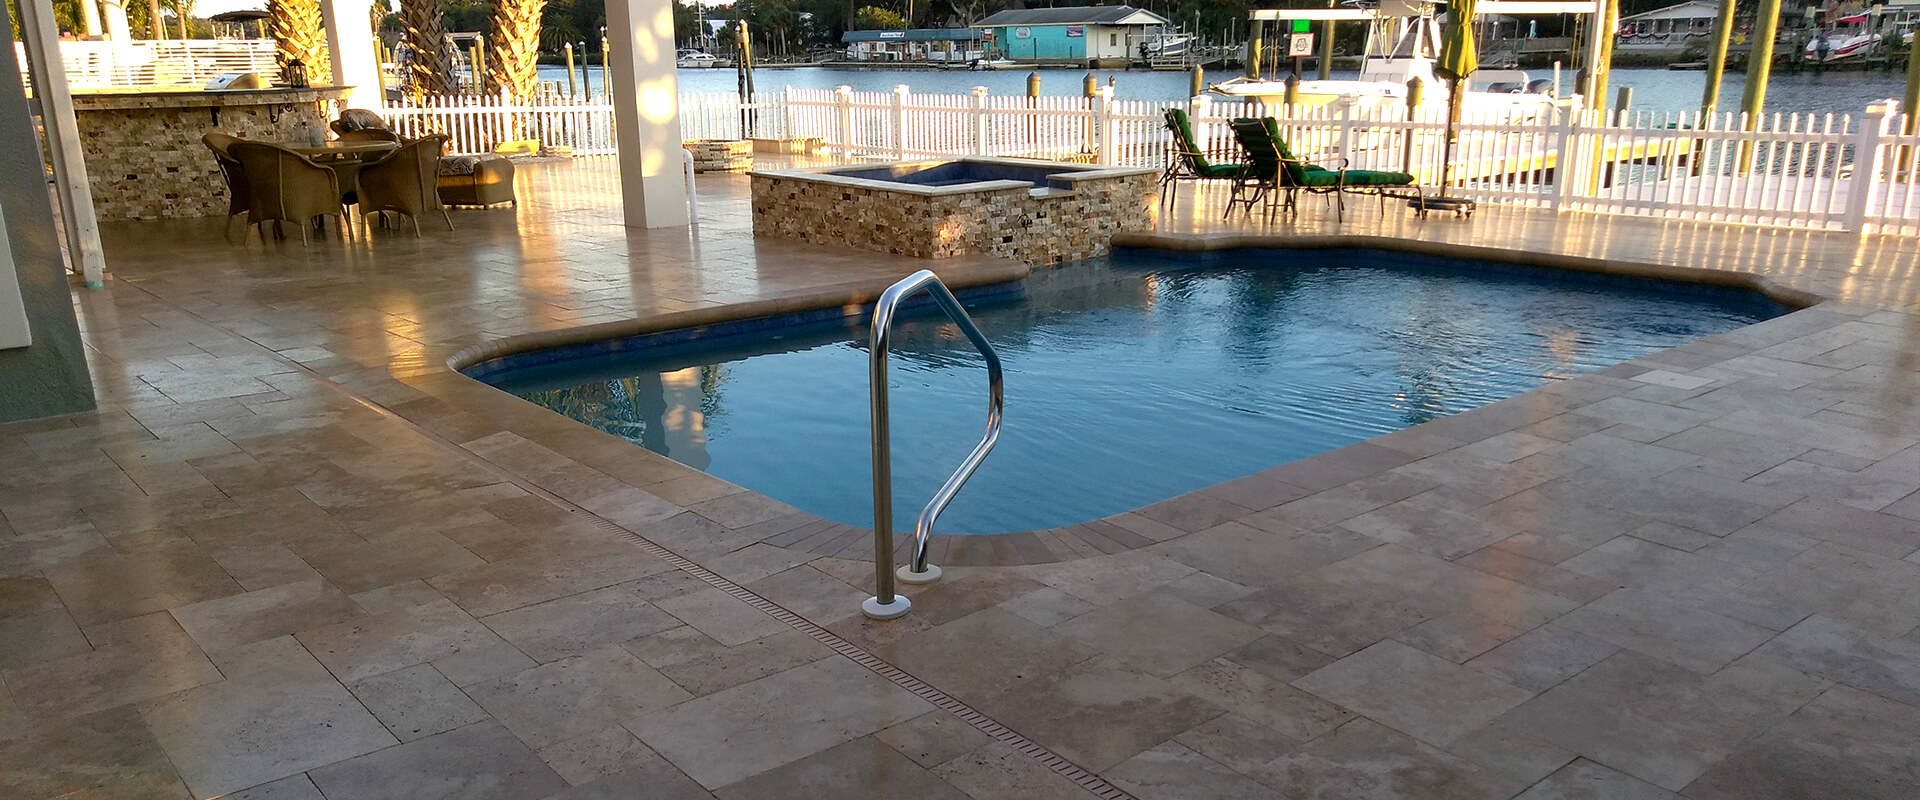 Pool Pros Remodel Remodeling and Construction Near You ...